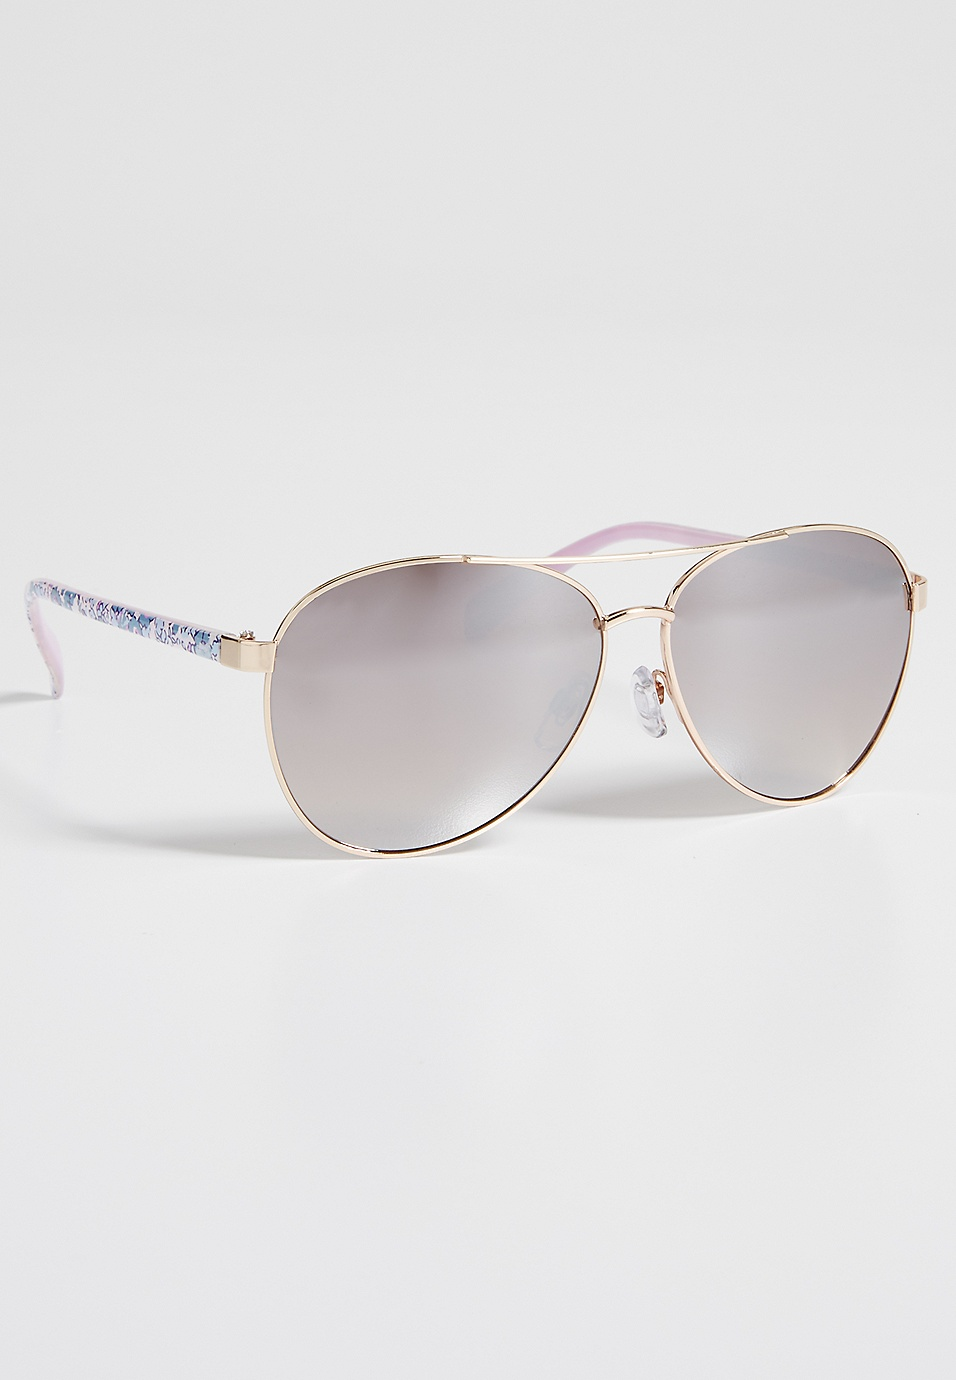 2057f160fa0d aviator sunglasses in floral print